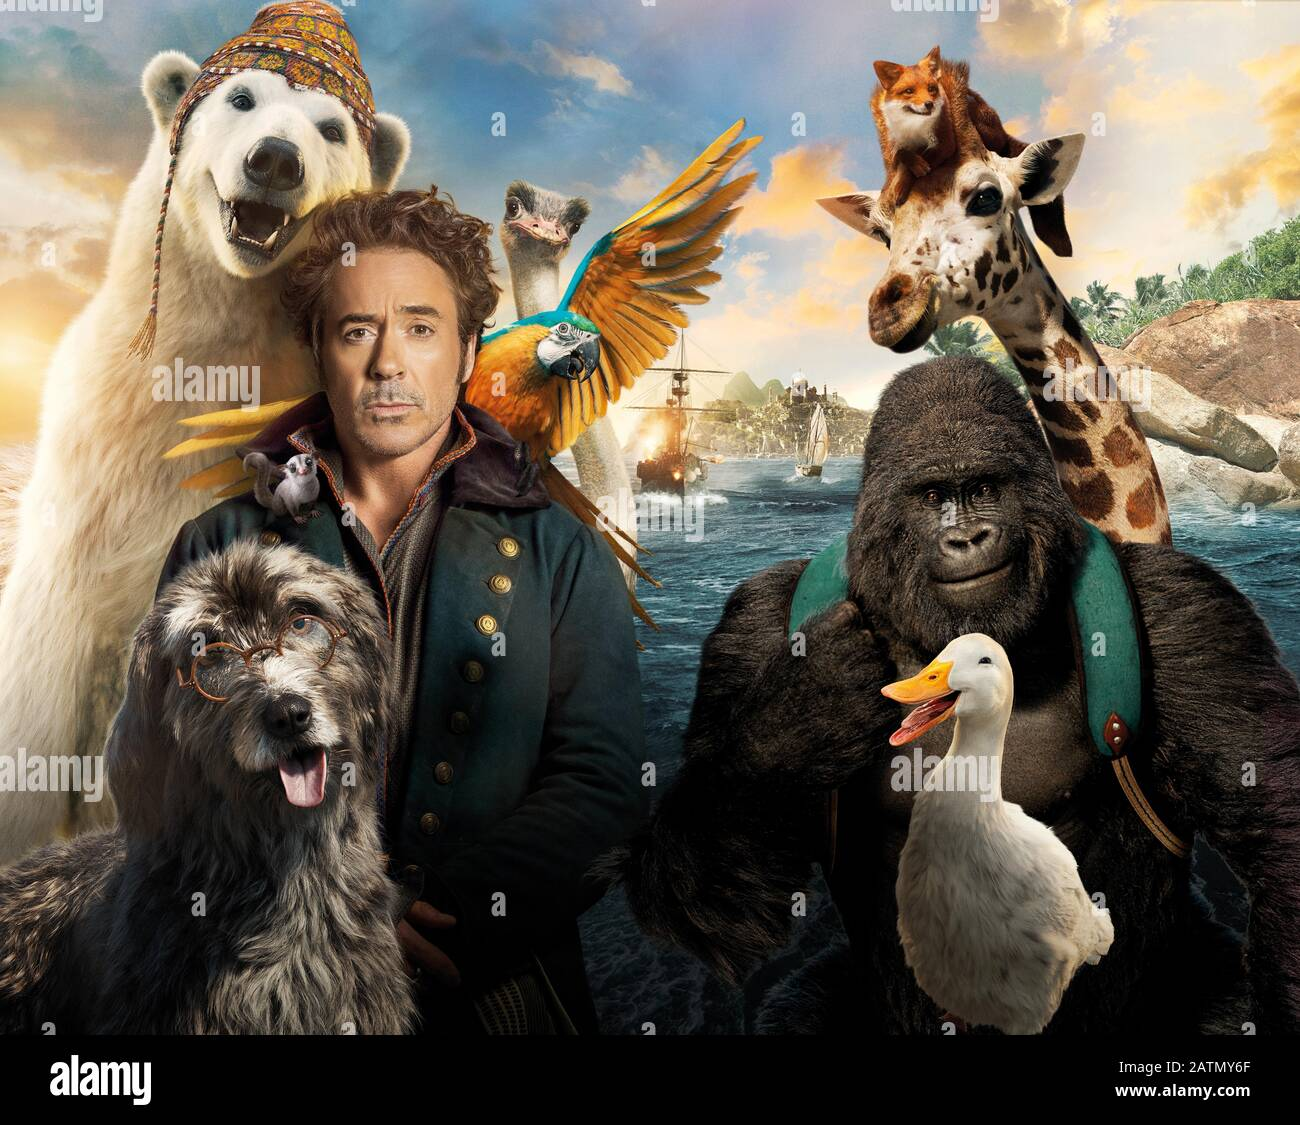 Robert Downey Jr In Dolittle 2020 Directed By Stephen Gaghan Credit Universal Pictures Perfect World Pictures Team Downey Album Stock Photo Alamy